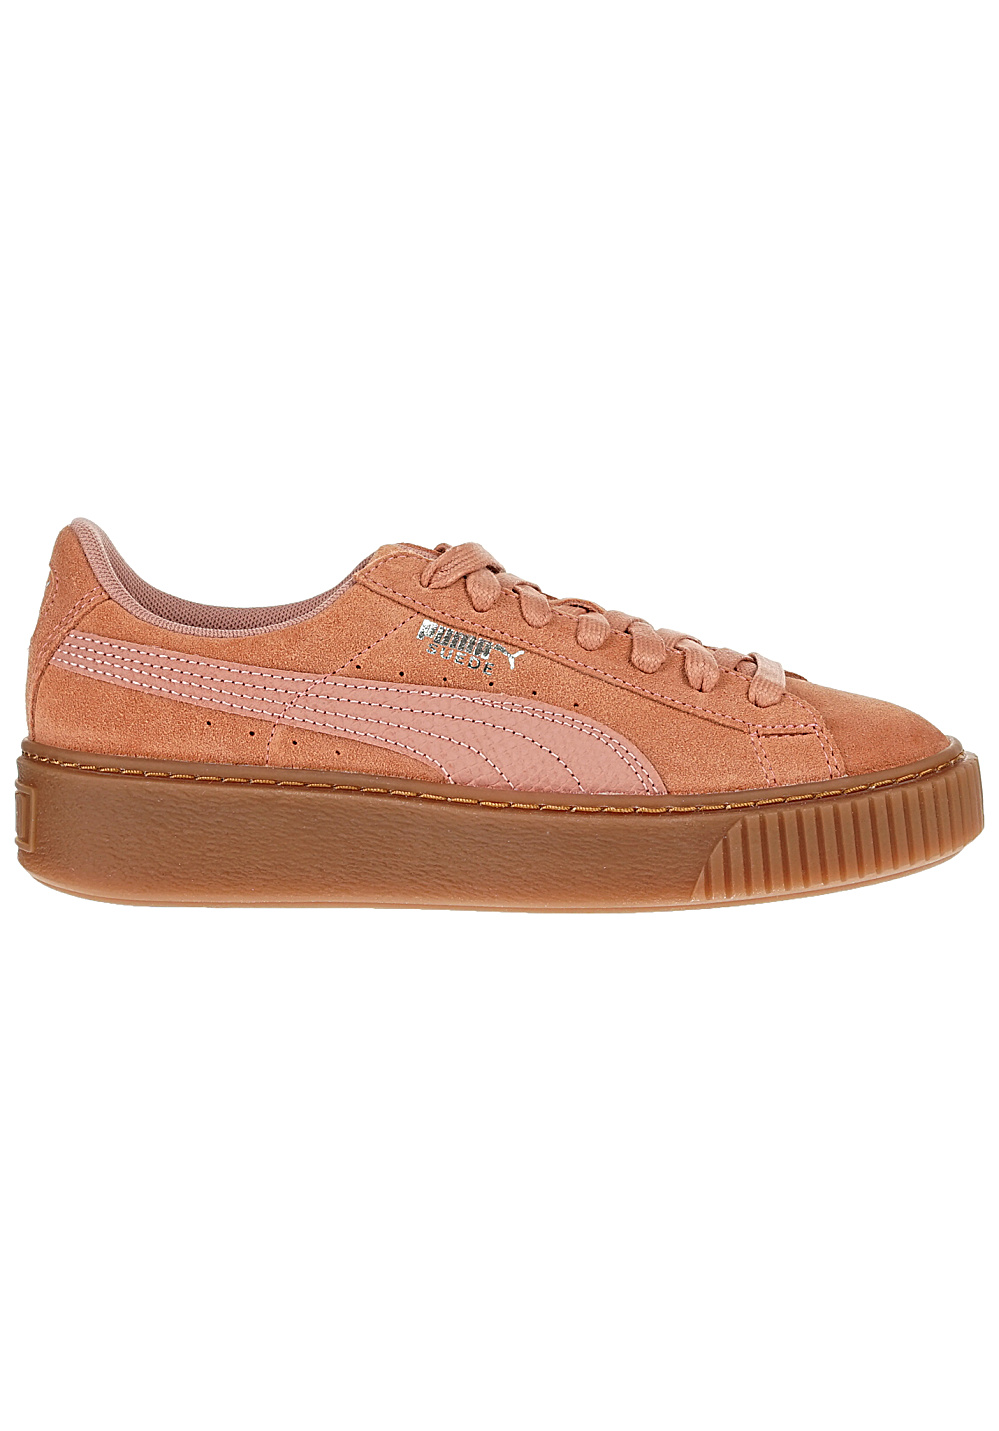 new style c8ffa ee905 Puma Suede Platform Animal - Baskets pour Femme - Rose - Planet Sports